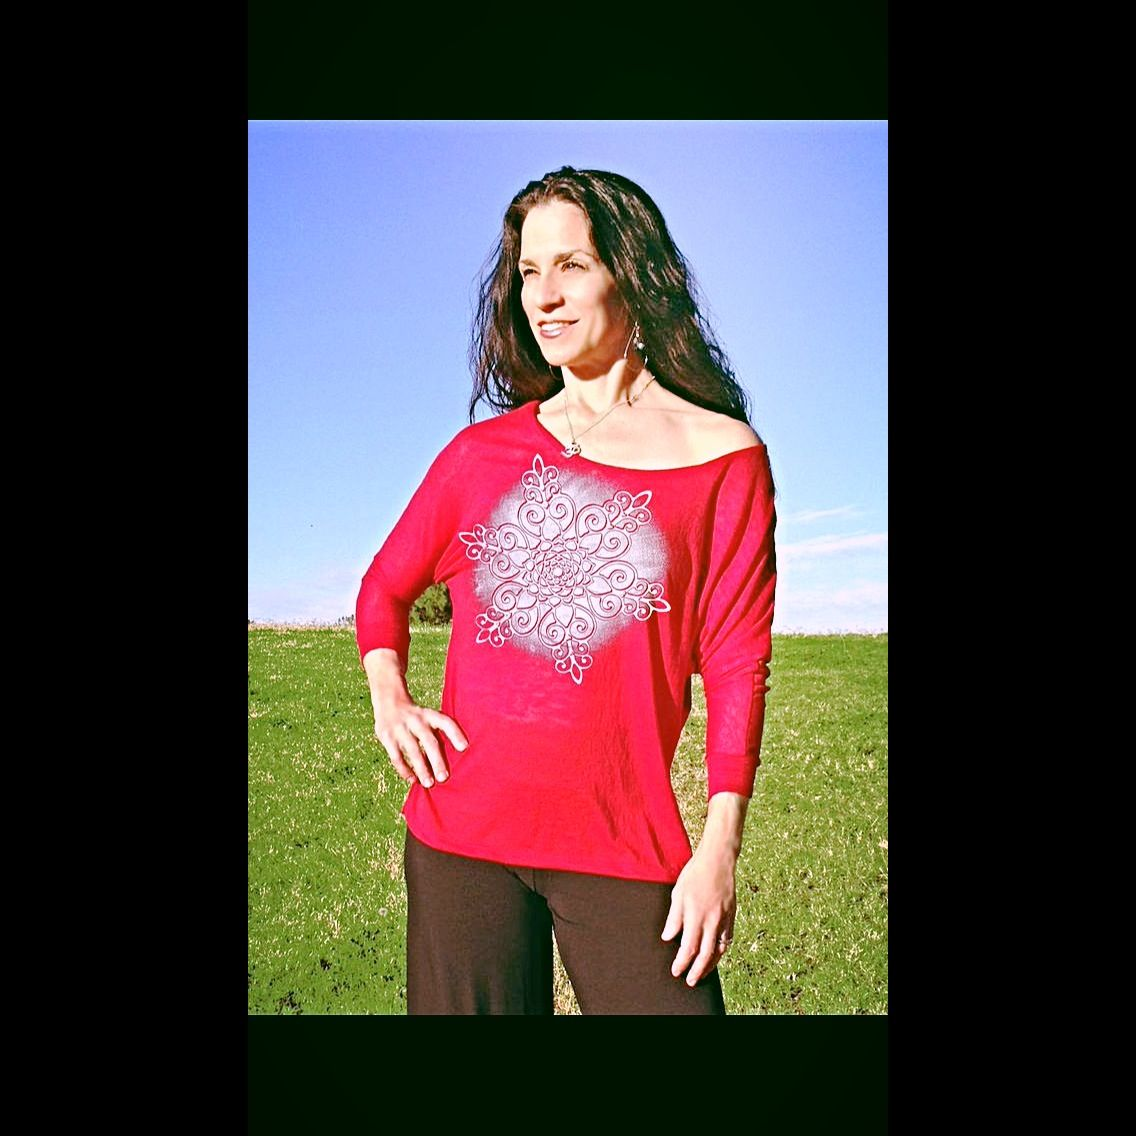 Yoganastix Fabulous new Zen Snowflake design on the cuddly new Snuggle Tee!  Love 2 live in it!